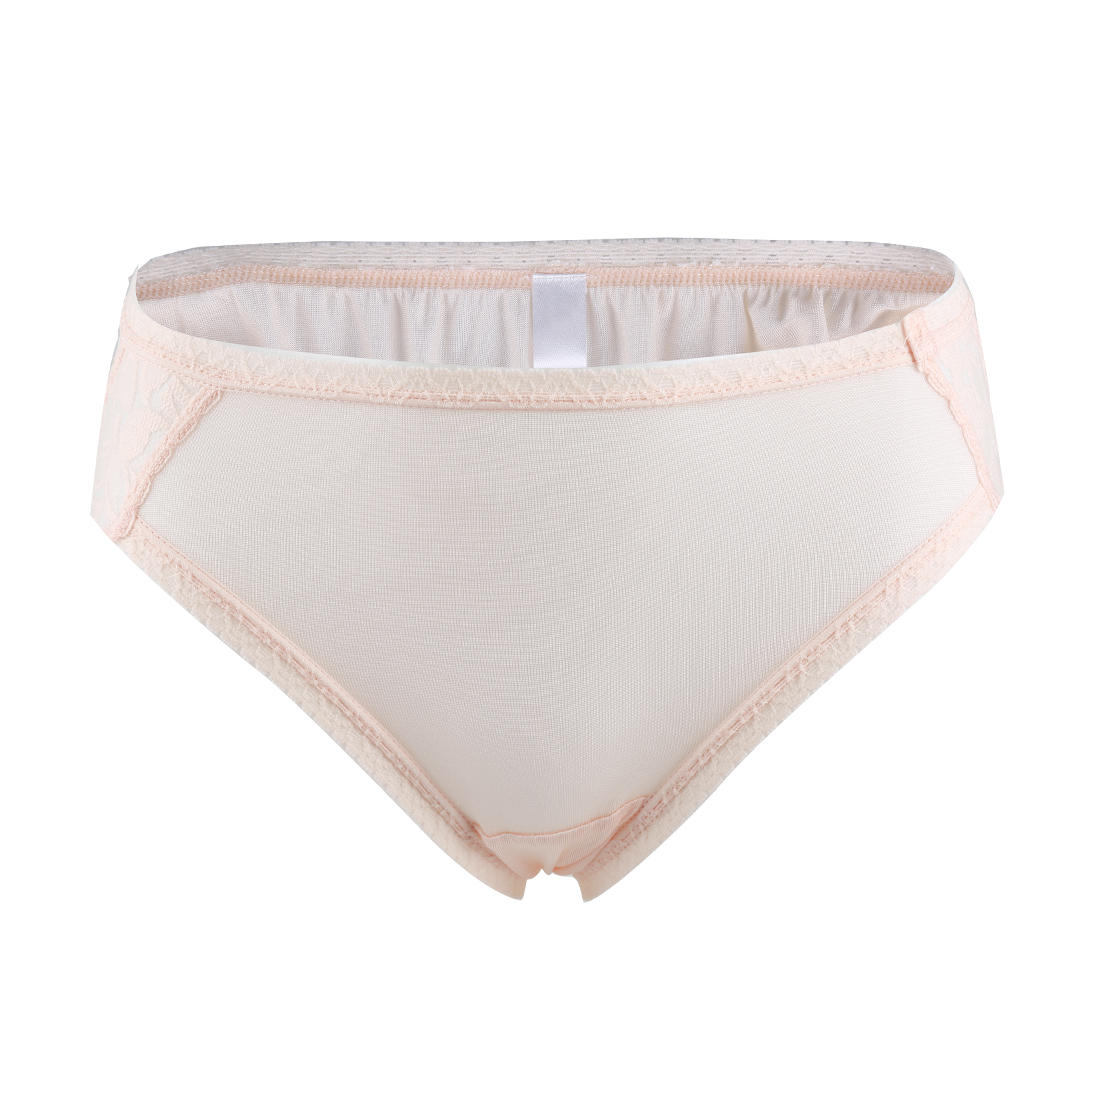 Women Natural Silk Laced Breathable Translucent Hi-Cut Panties Light Pink Medium